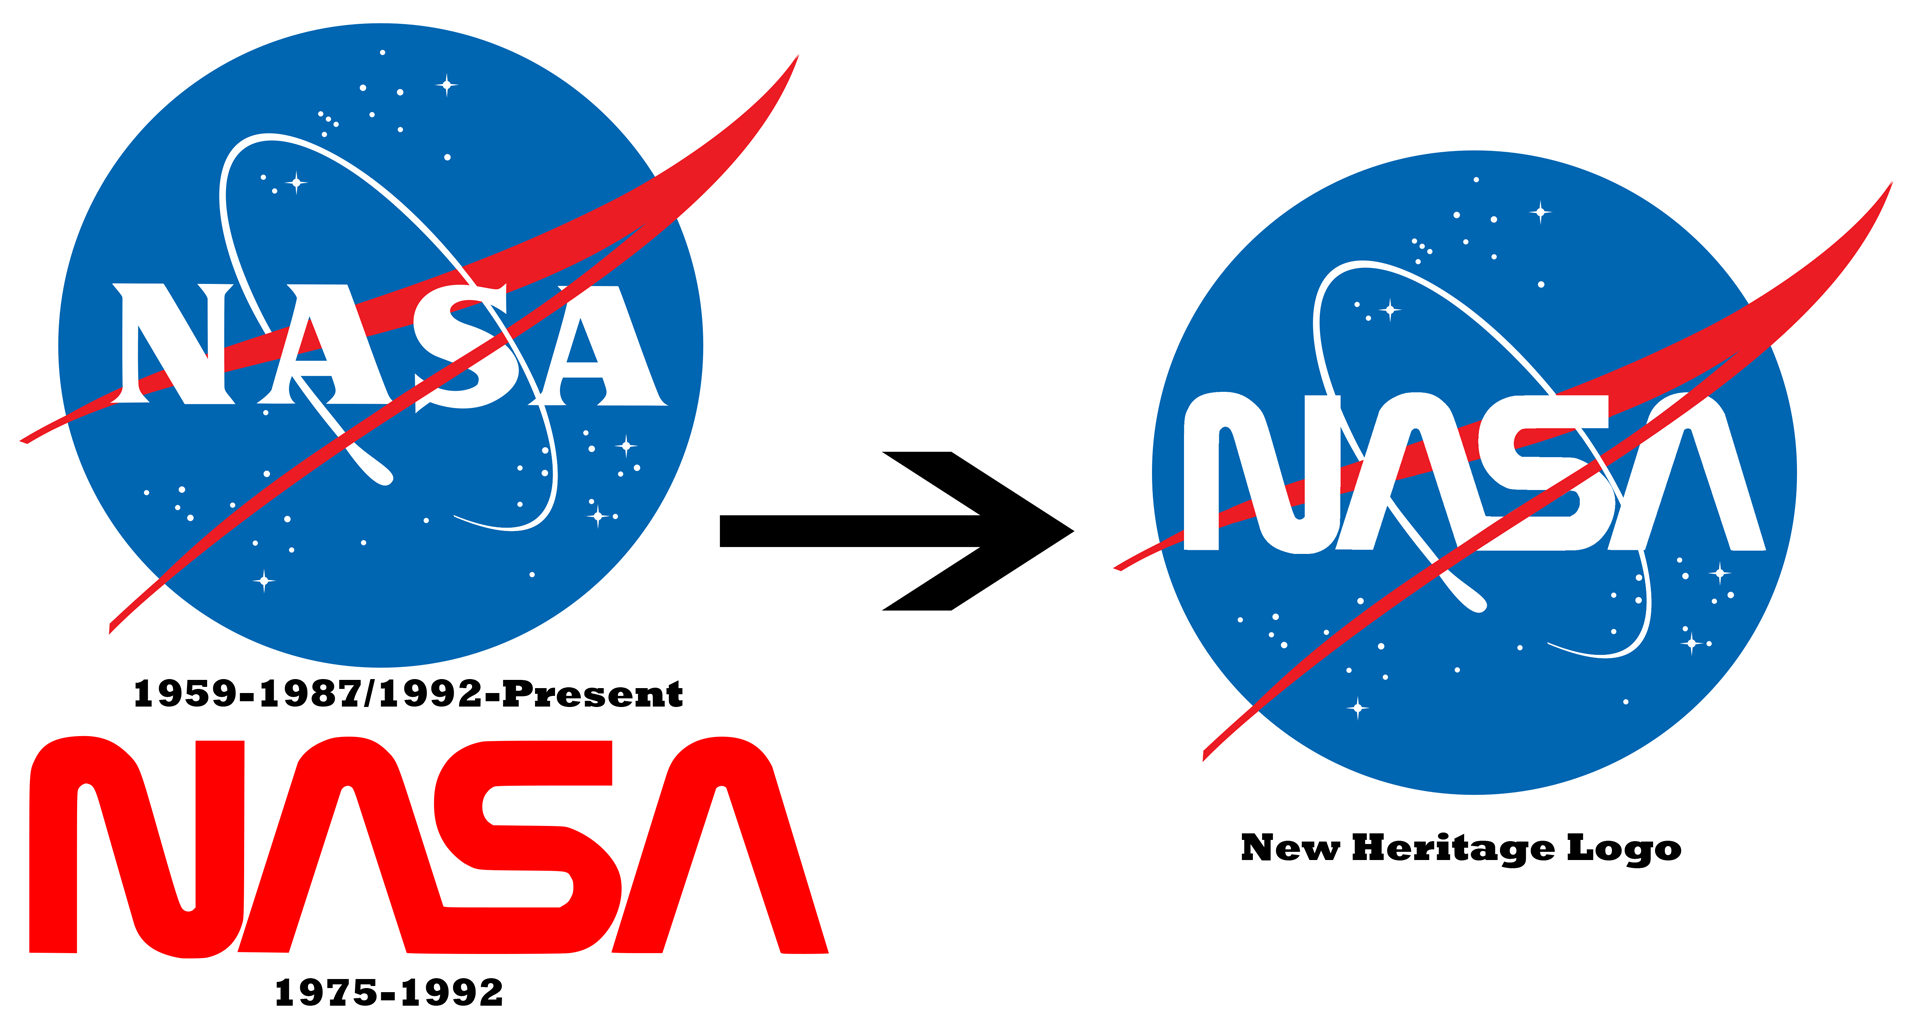 NASA logo evolution: meatball vs worm.